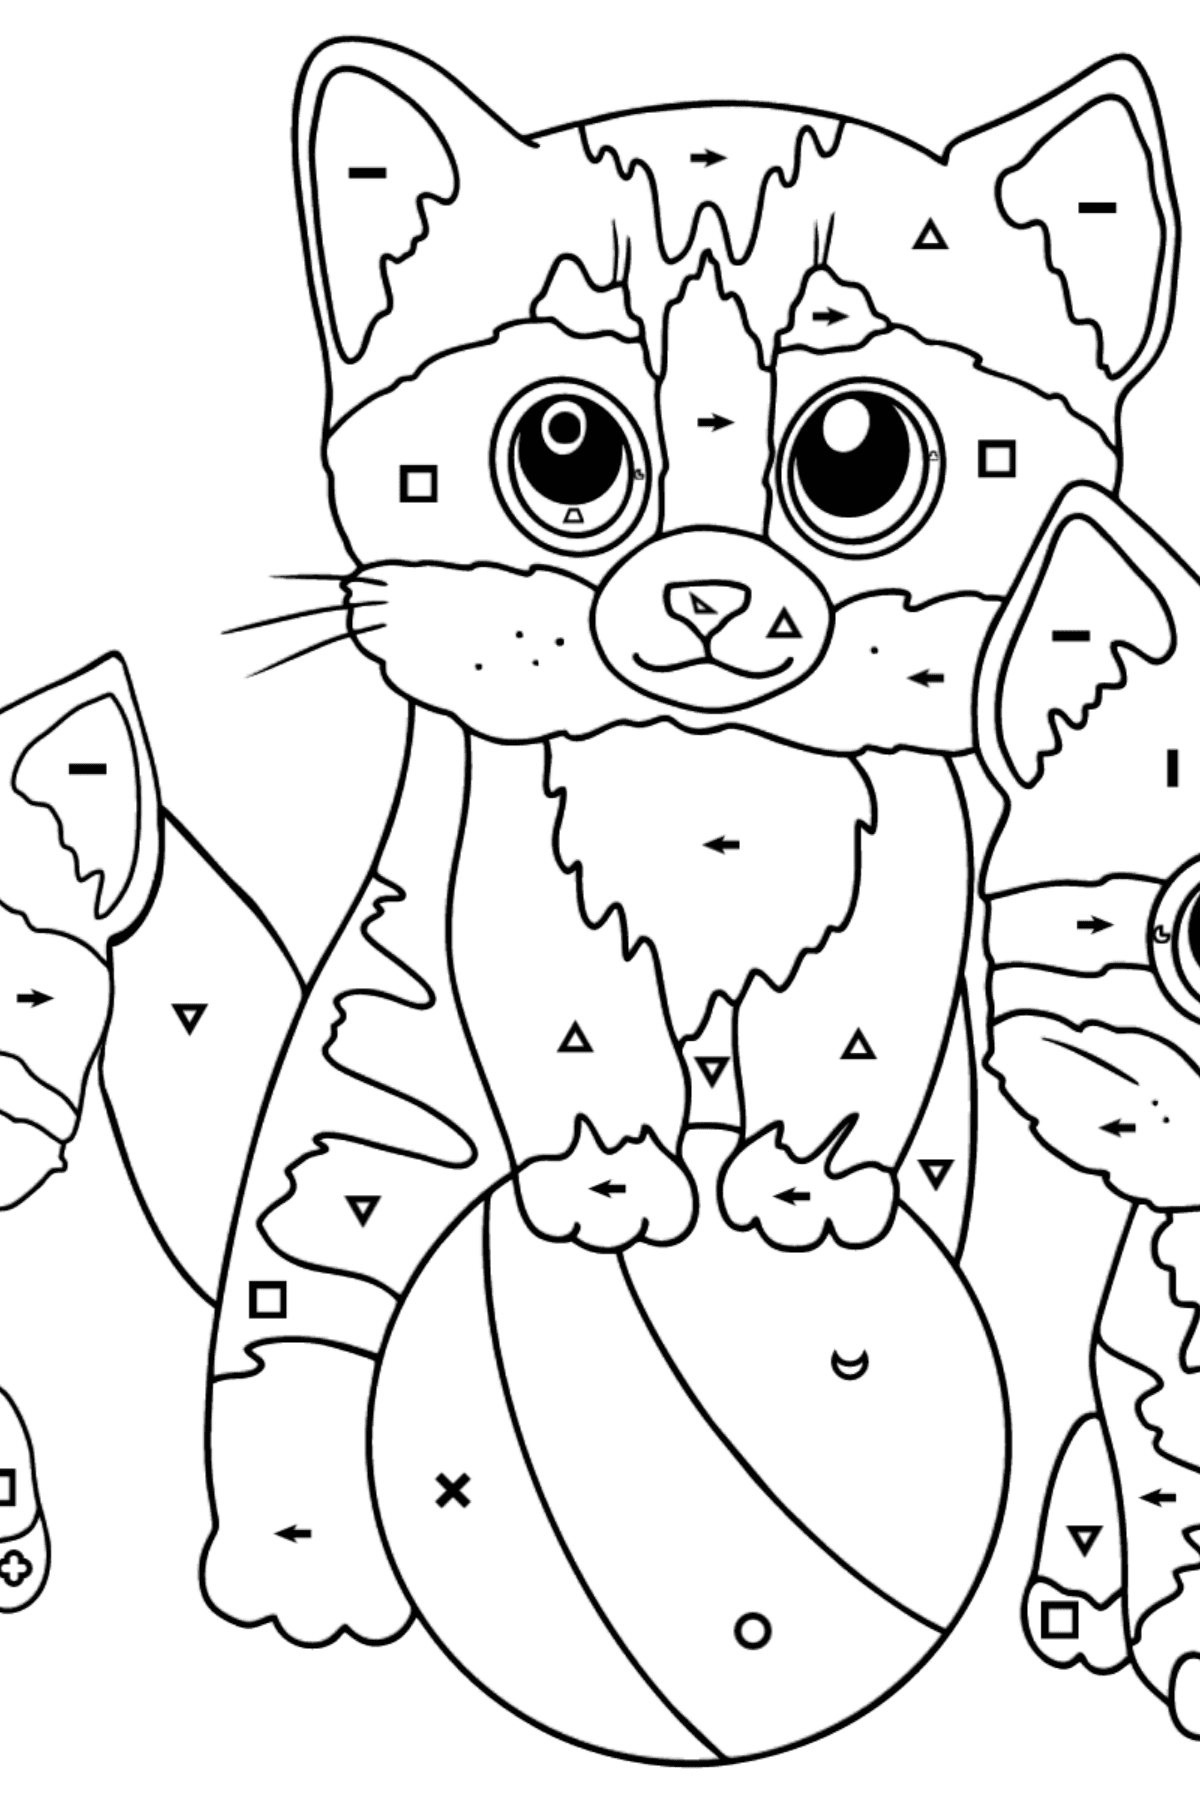 Coloring Page - Three Kittens are Playing Together with a Ball  - Coloring by Symbols and Geometric Shapes for Kids